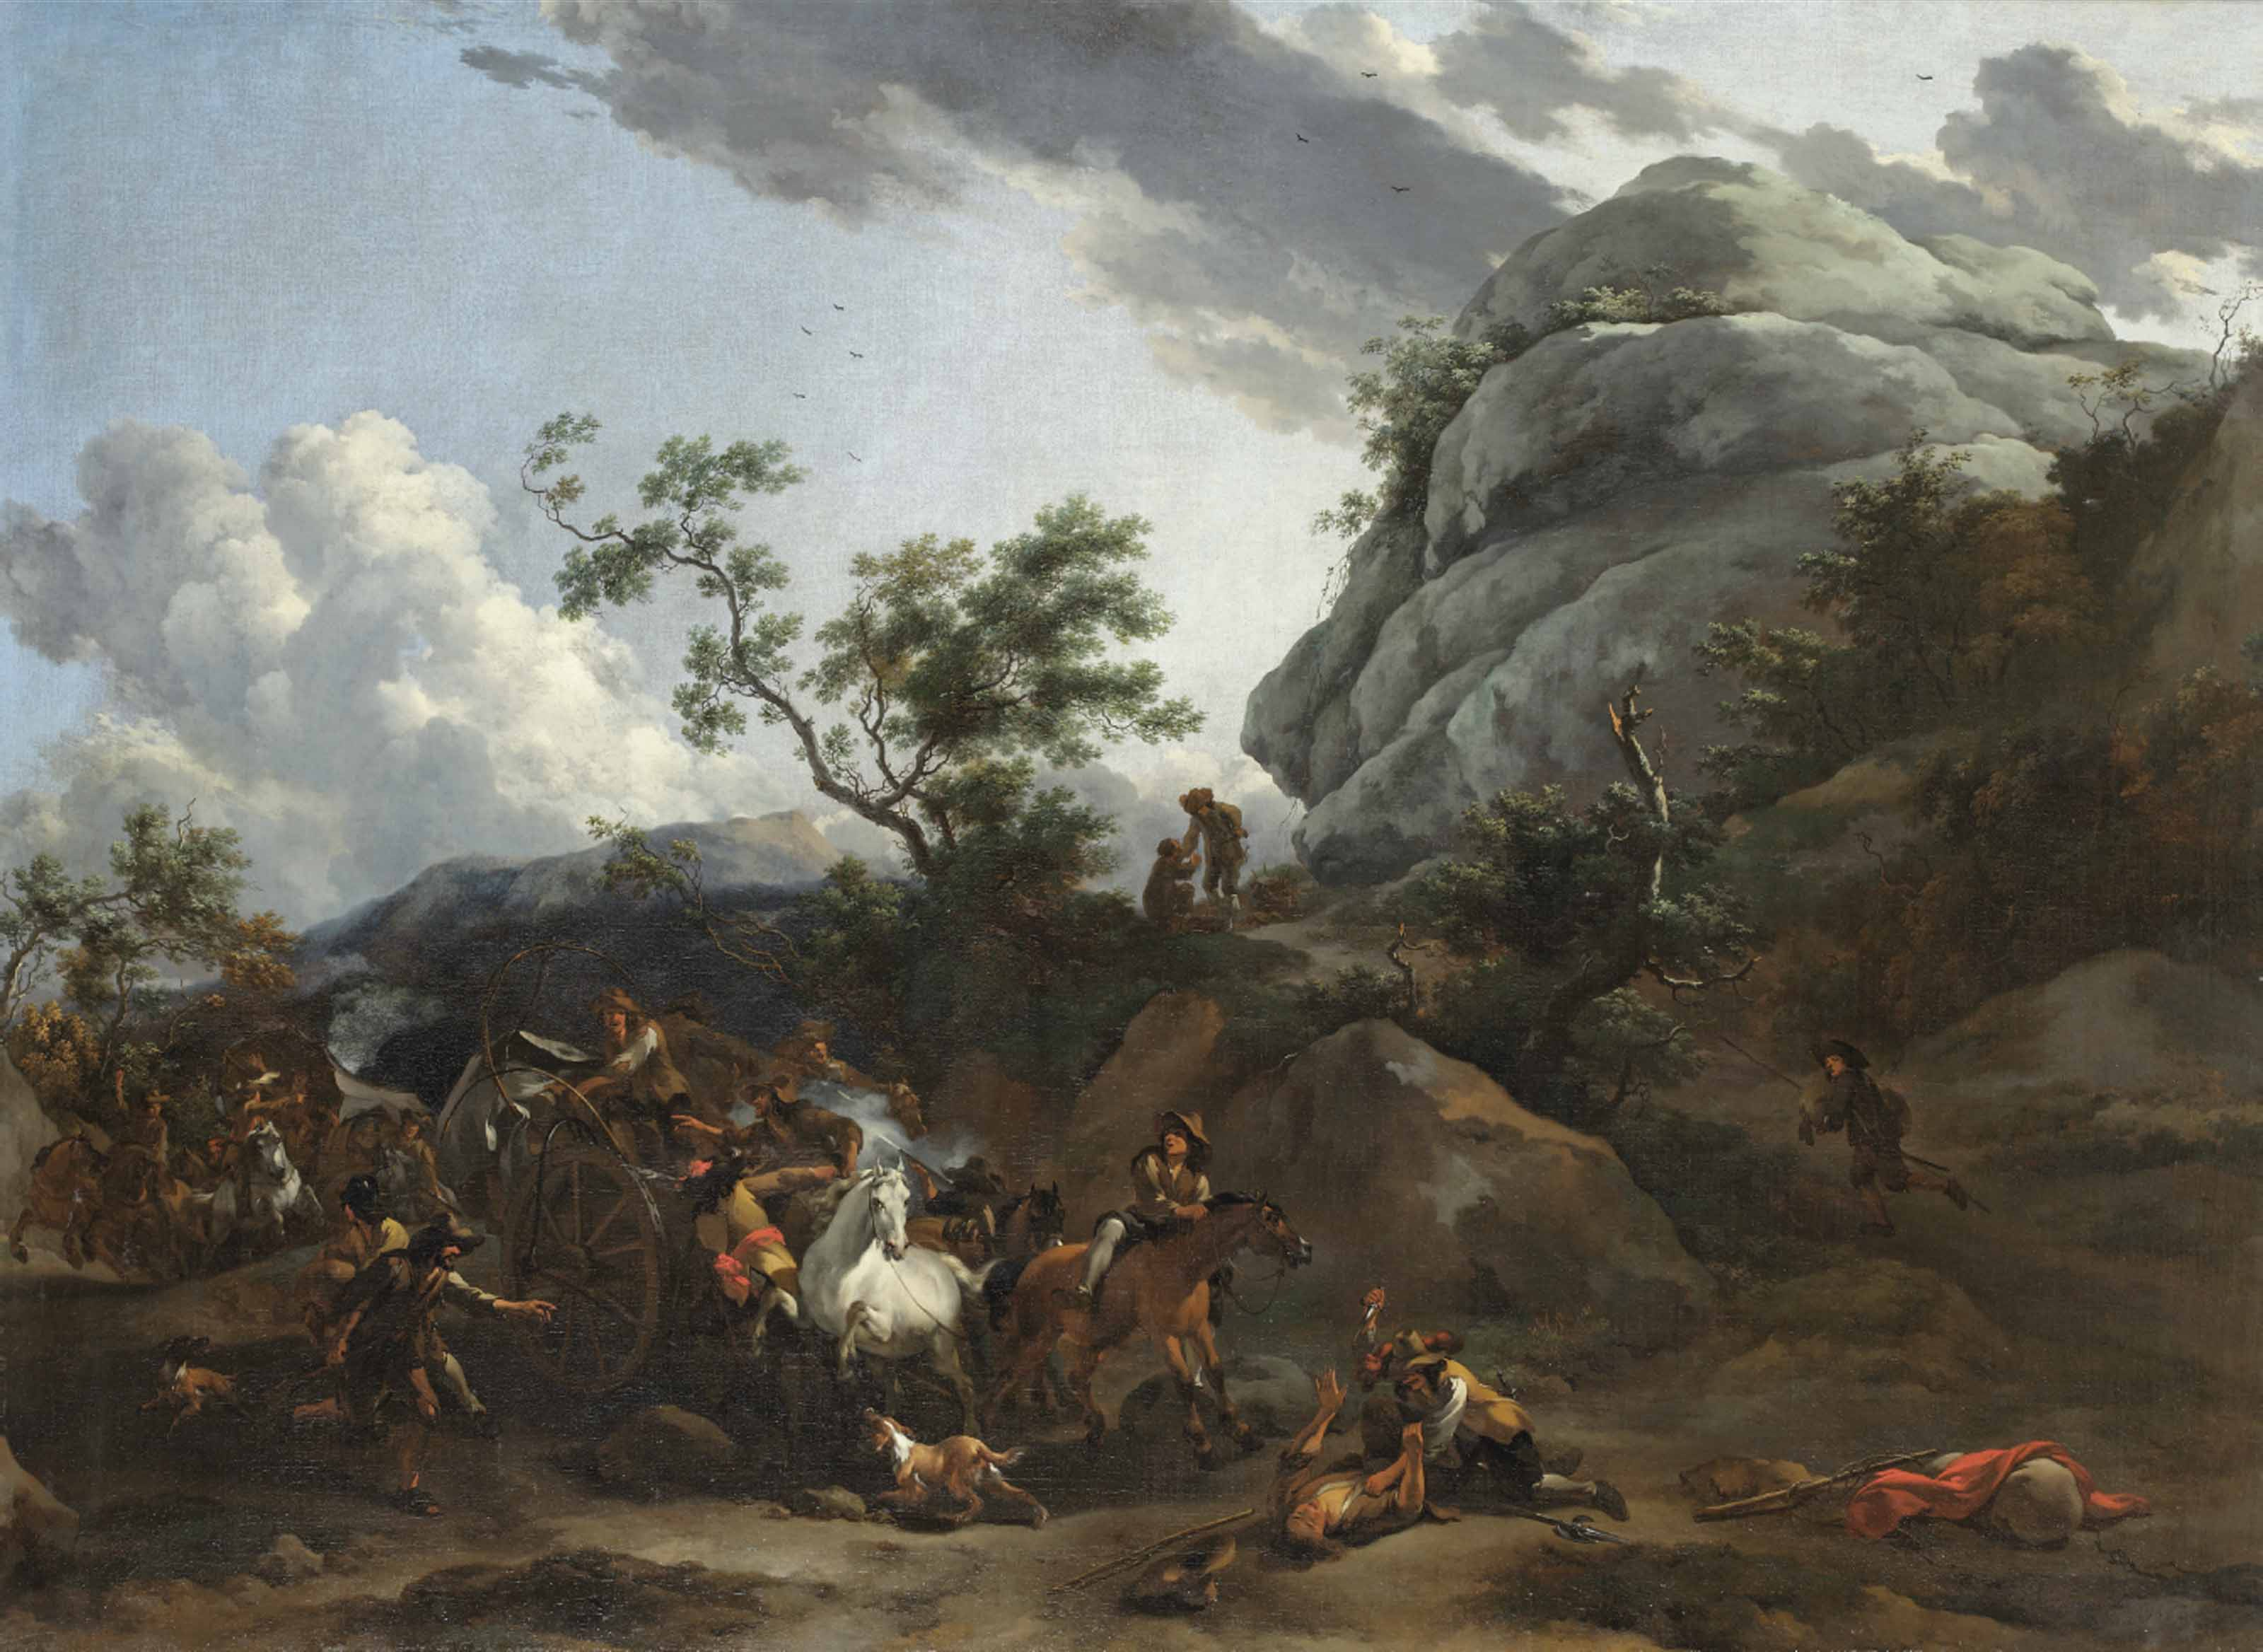 A mountainous landscape with travellers being ambushed